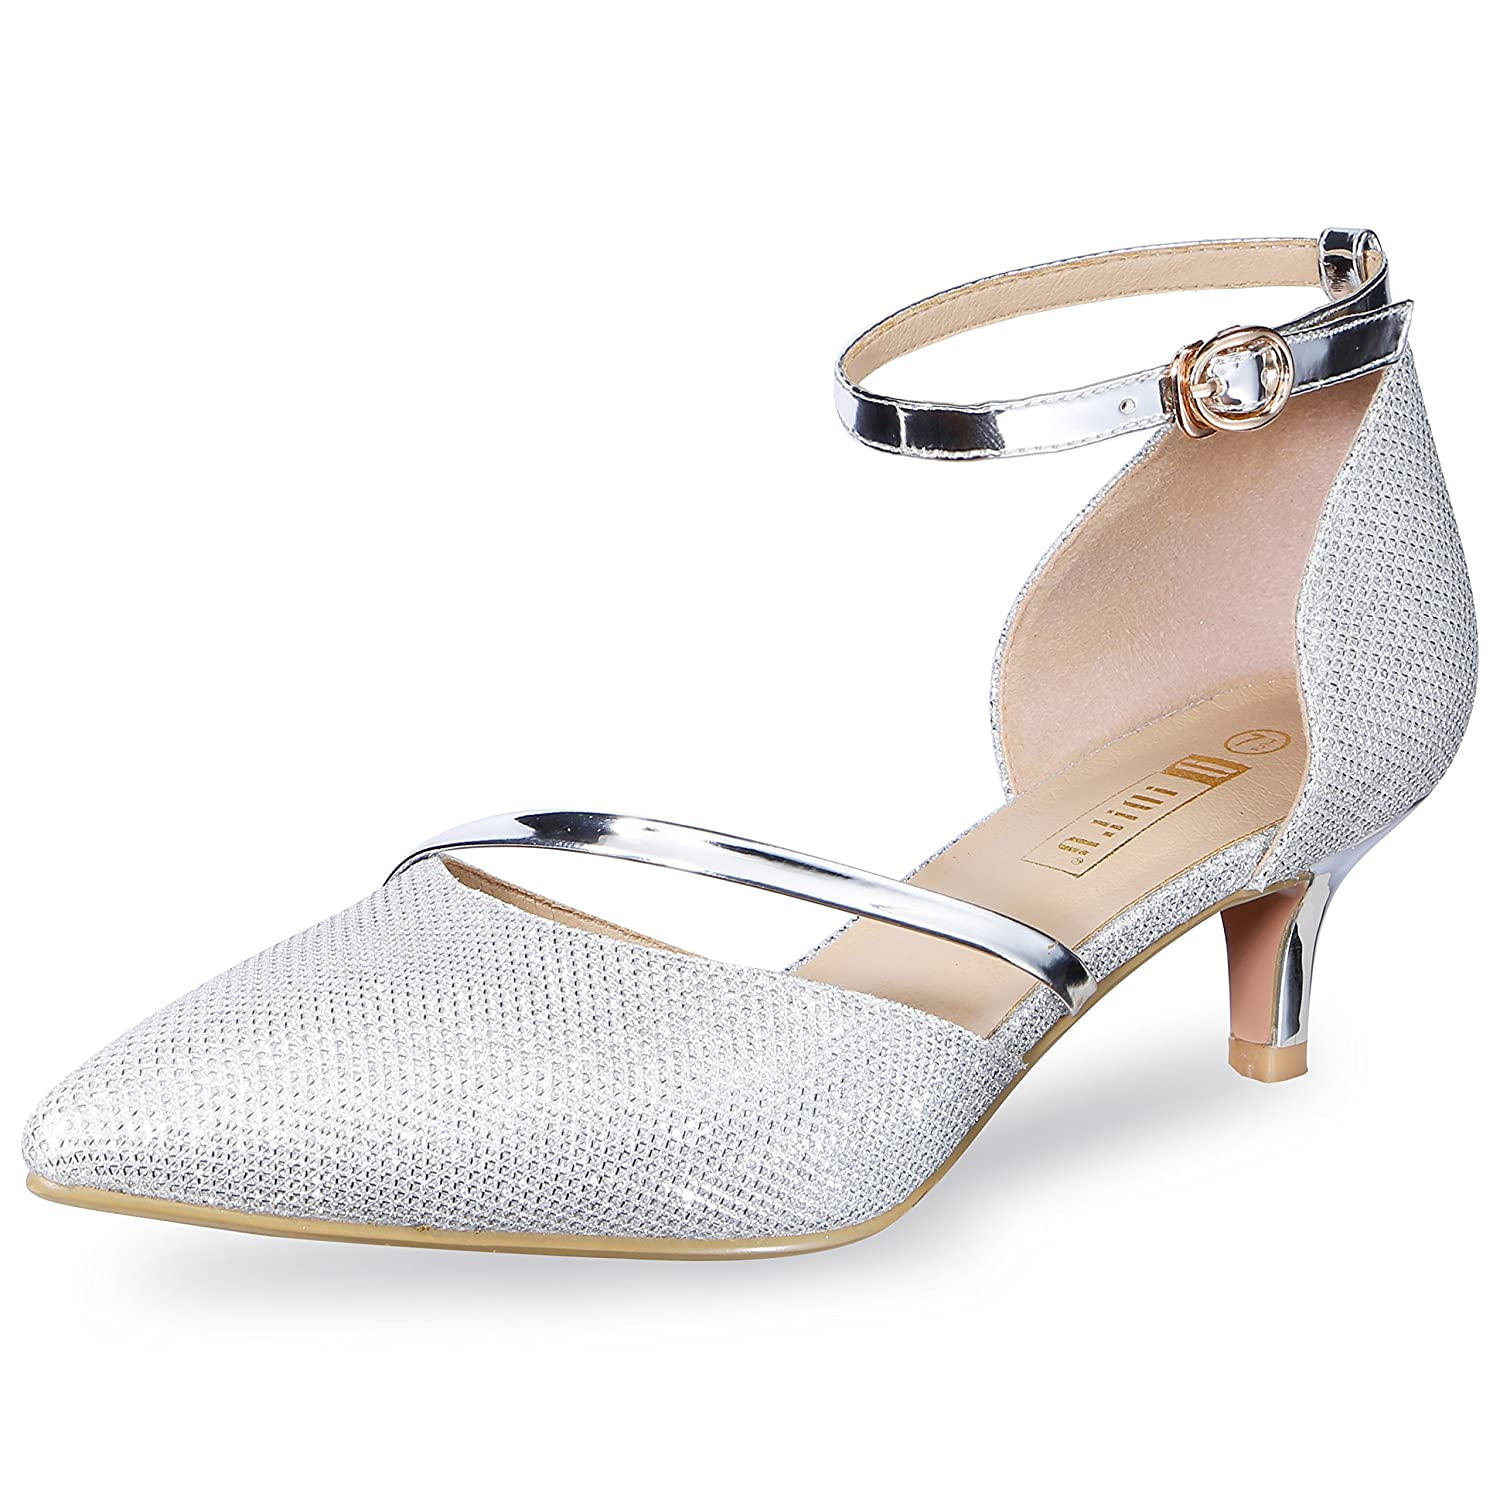 IDIFU Womens IN2 Maxine Sequins Mid Kitten Heels Closed Pointed Toe D-Orsay Party Sandal Low Heels Bridal Pump Wedding Shoes